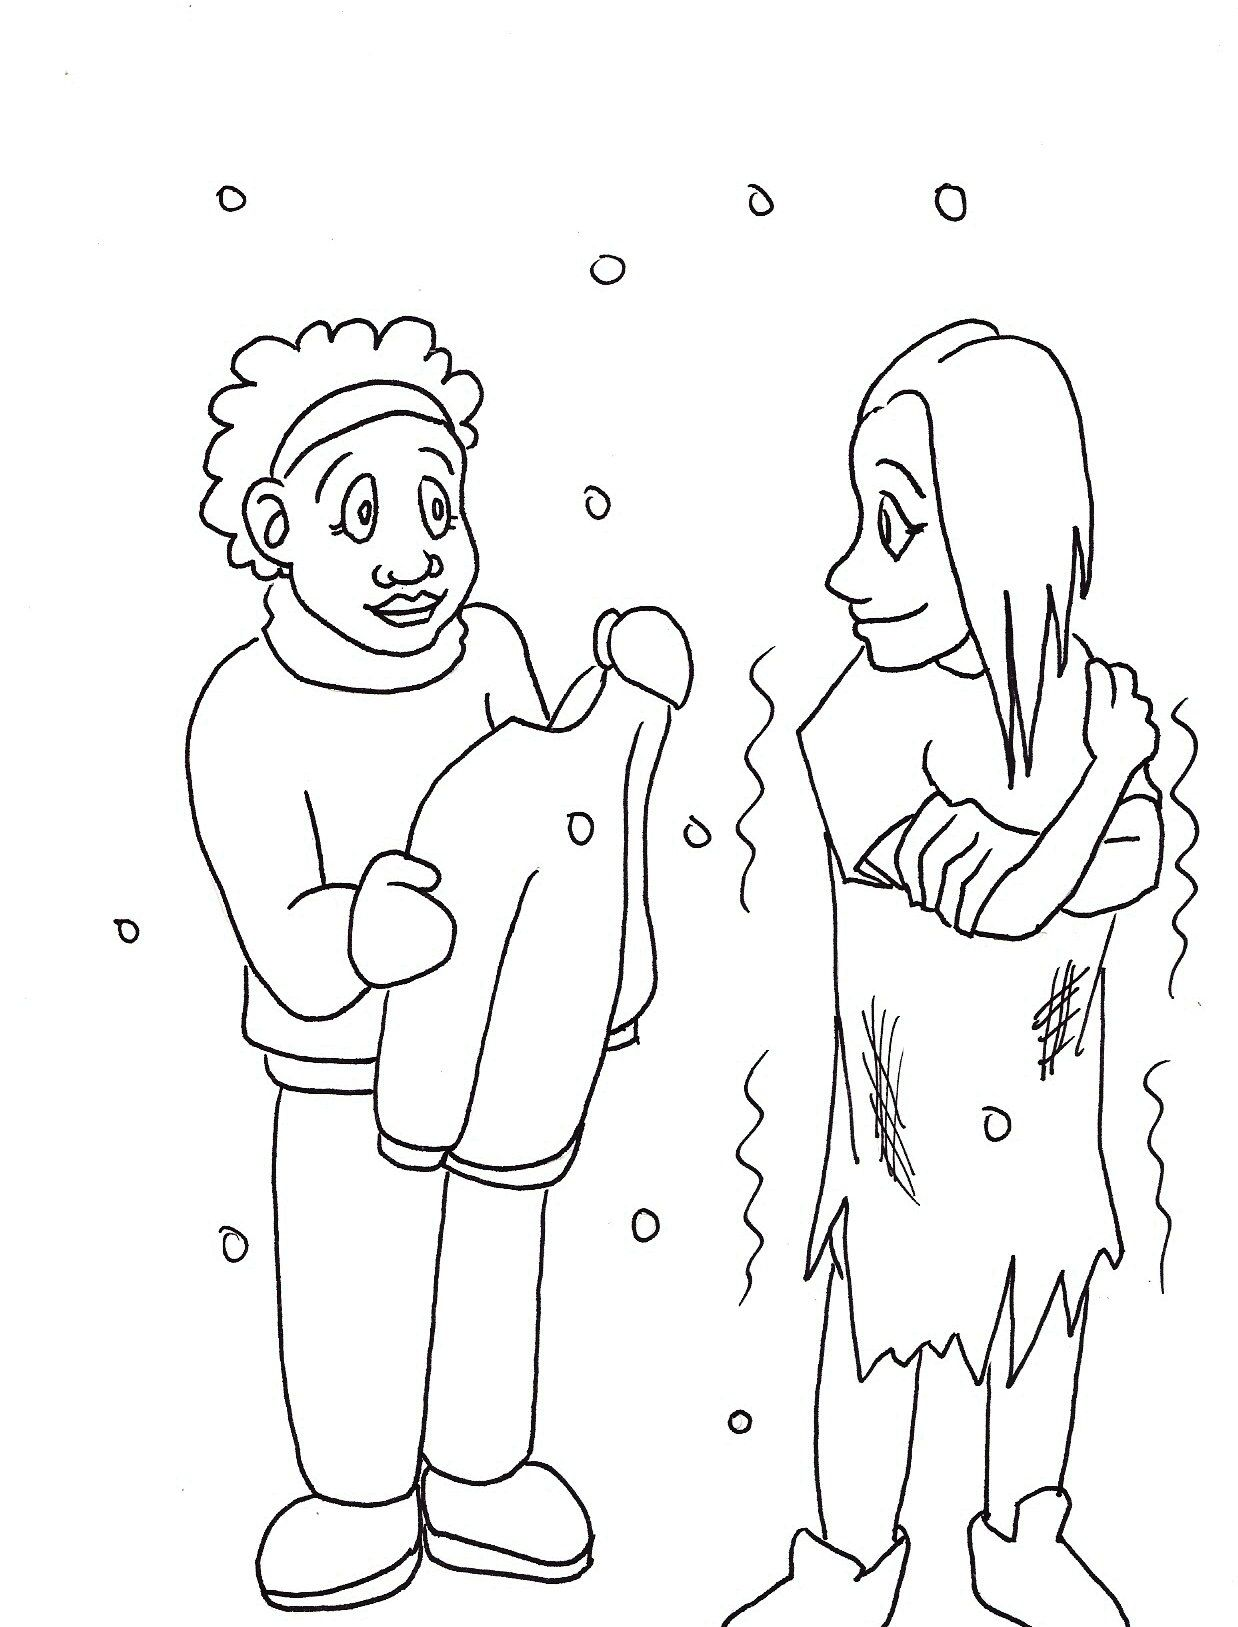 Coloring pages kindness - 704545574c032dcec97f796e862a25d5 Generosity Coloring Pages Printable Google Search Robotics On Coloring Pictures Of Kindness